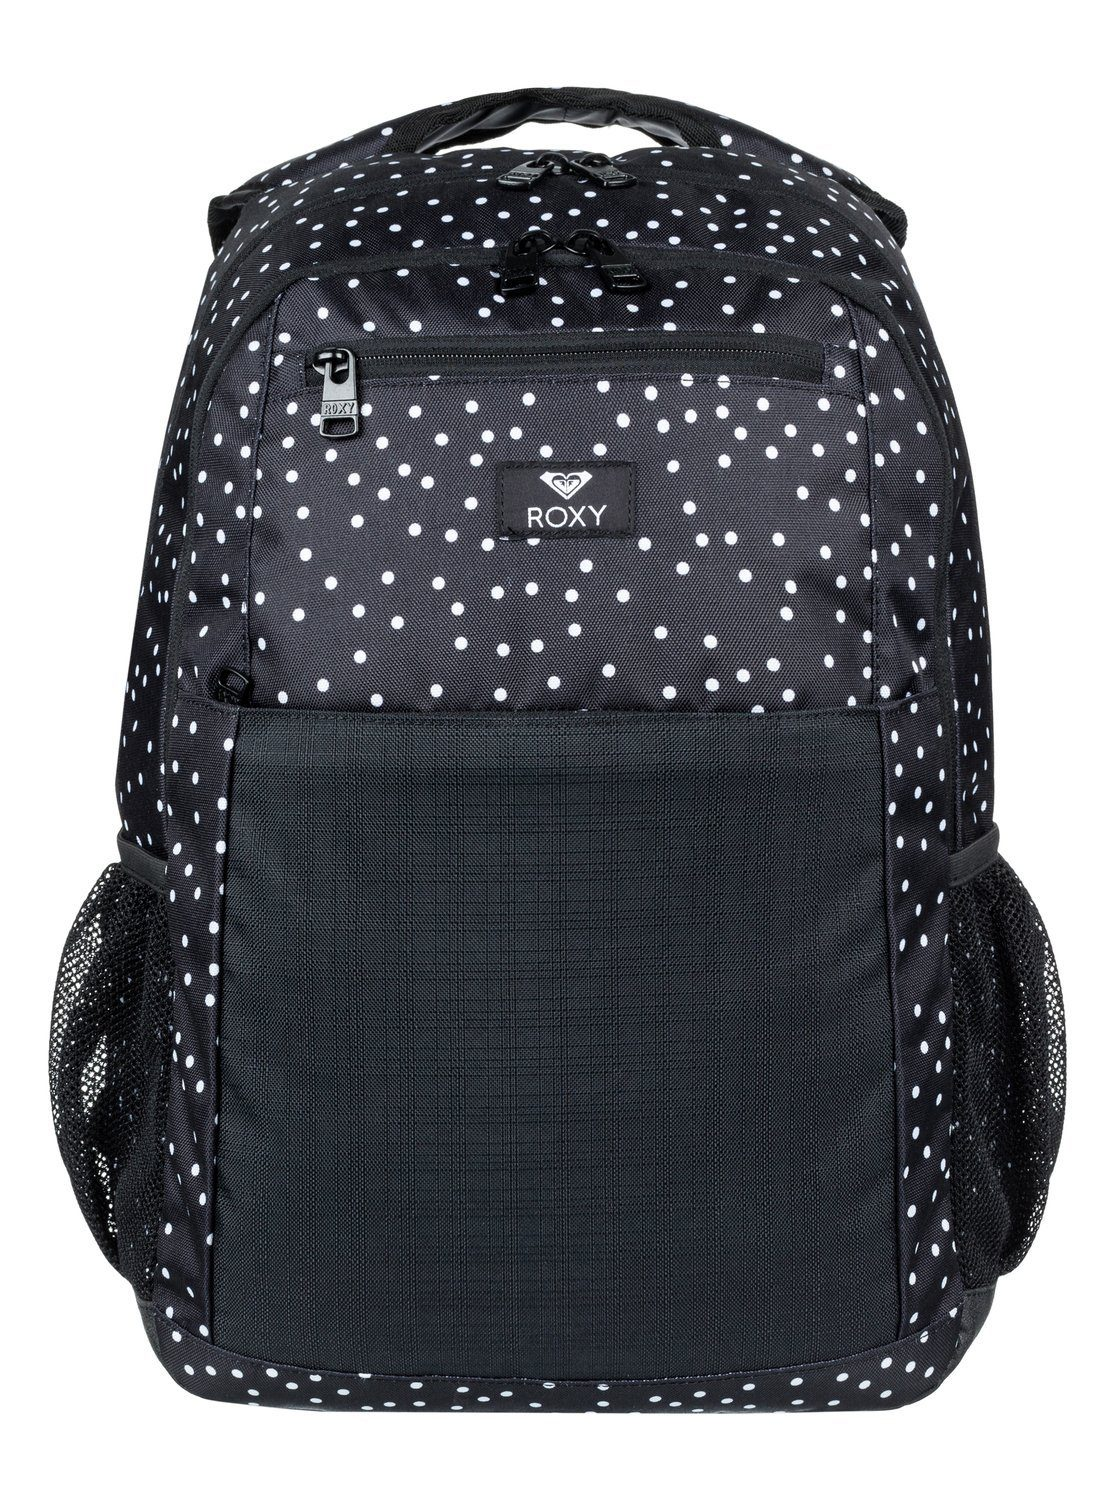 Roxy Mittelgroßer Rucksack »Here You Are Mix 23.5L«